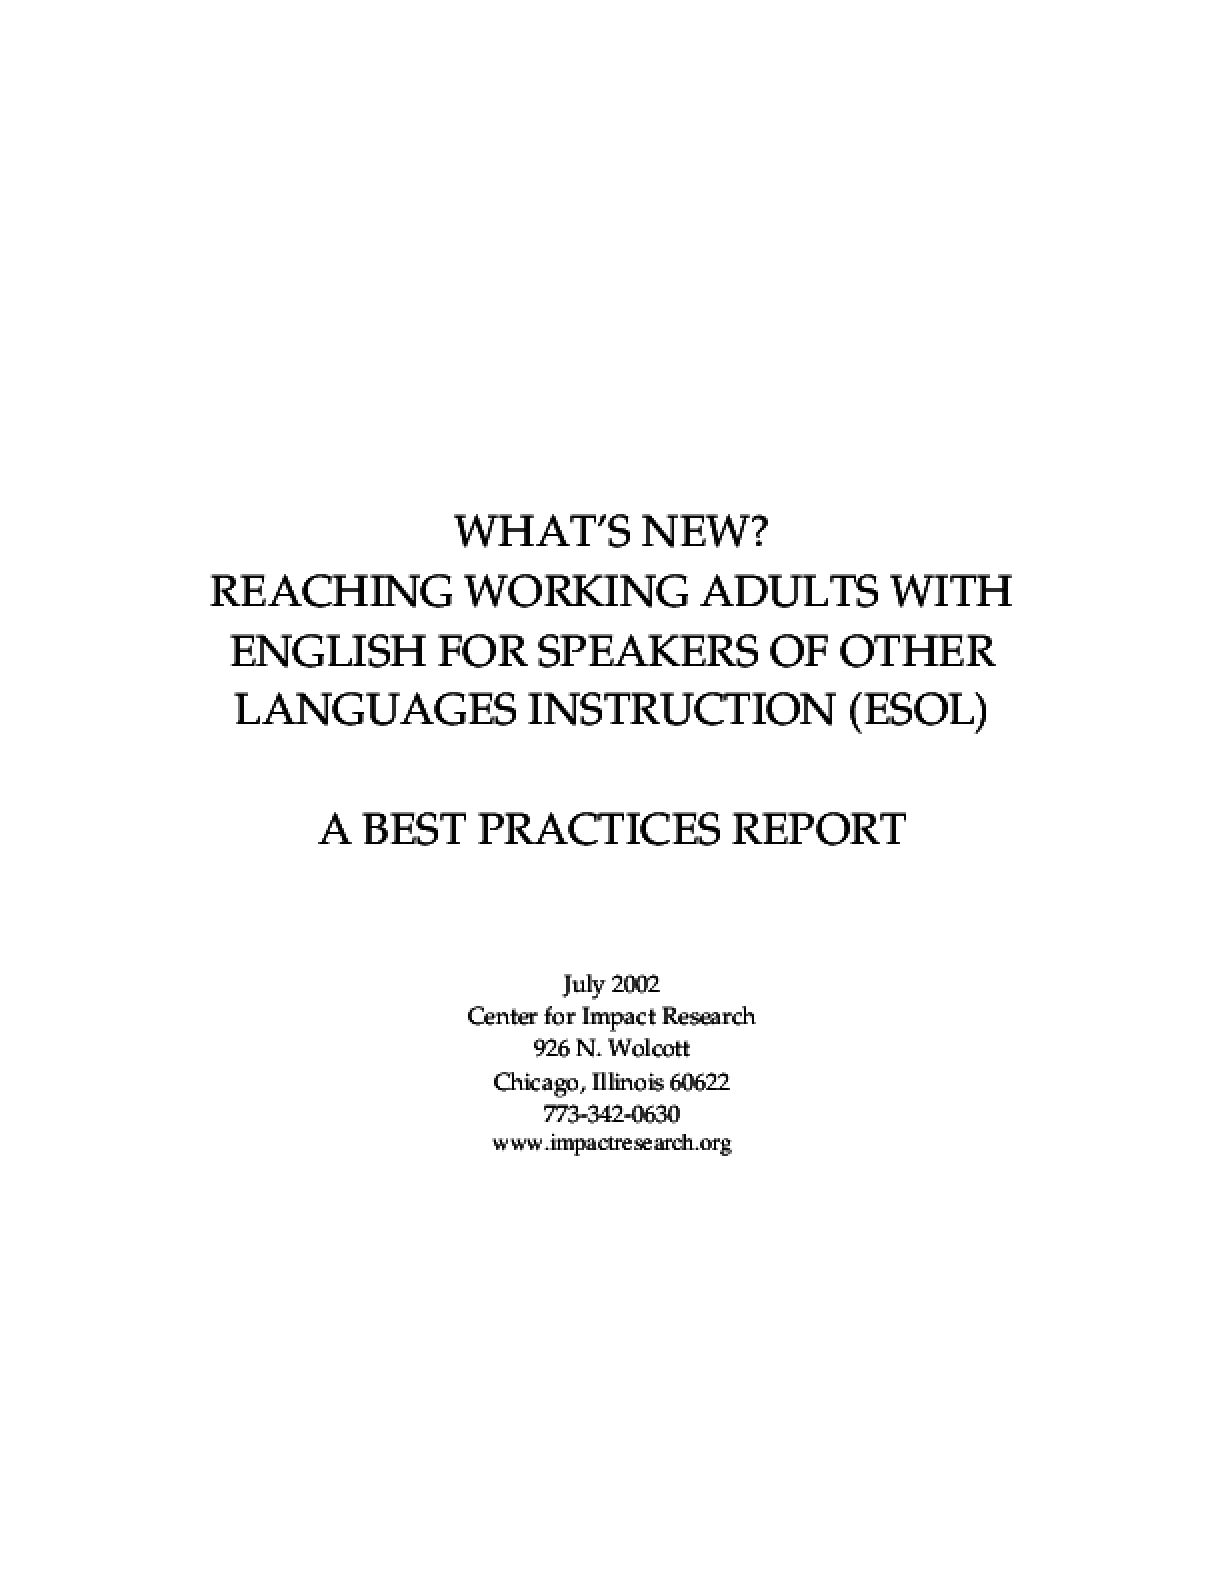 What's New? Reaching Working Adults with English for Speakers of Other Languages (ESOL) Instruction, A Best Practices Report